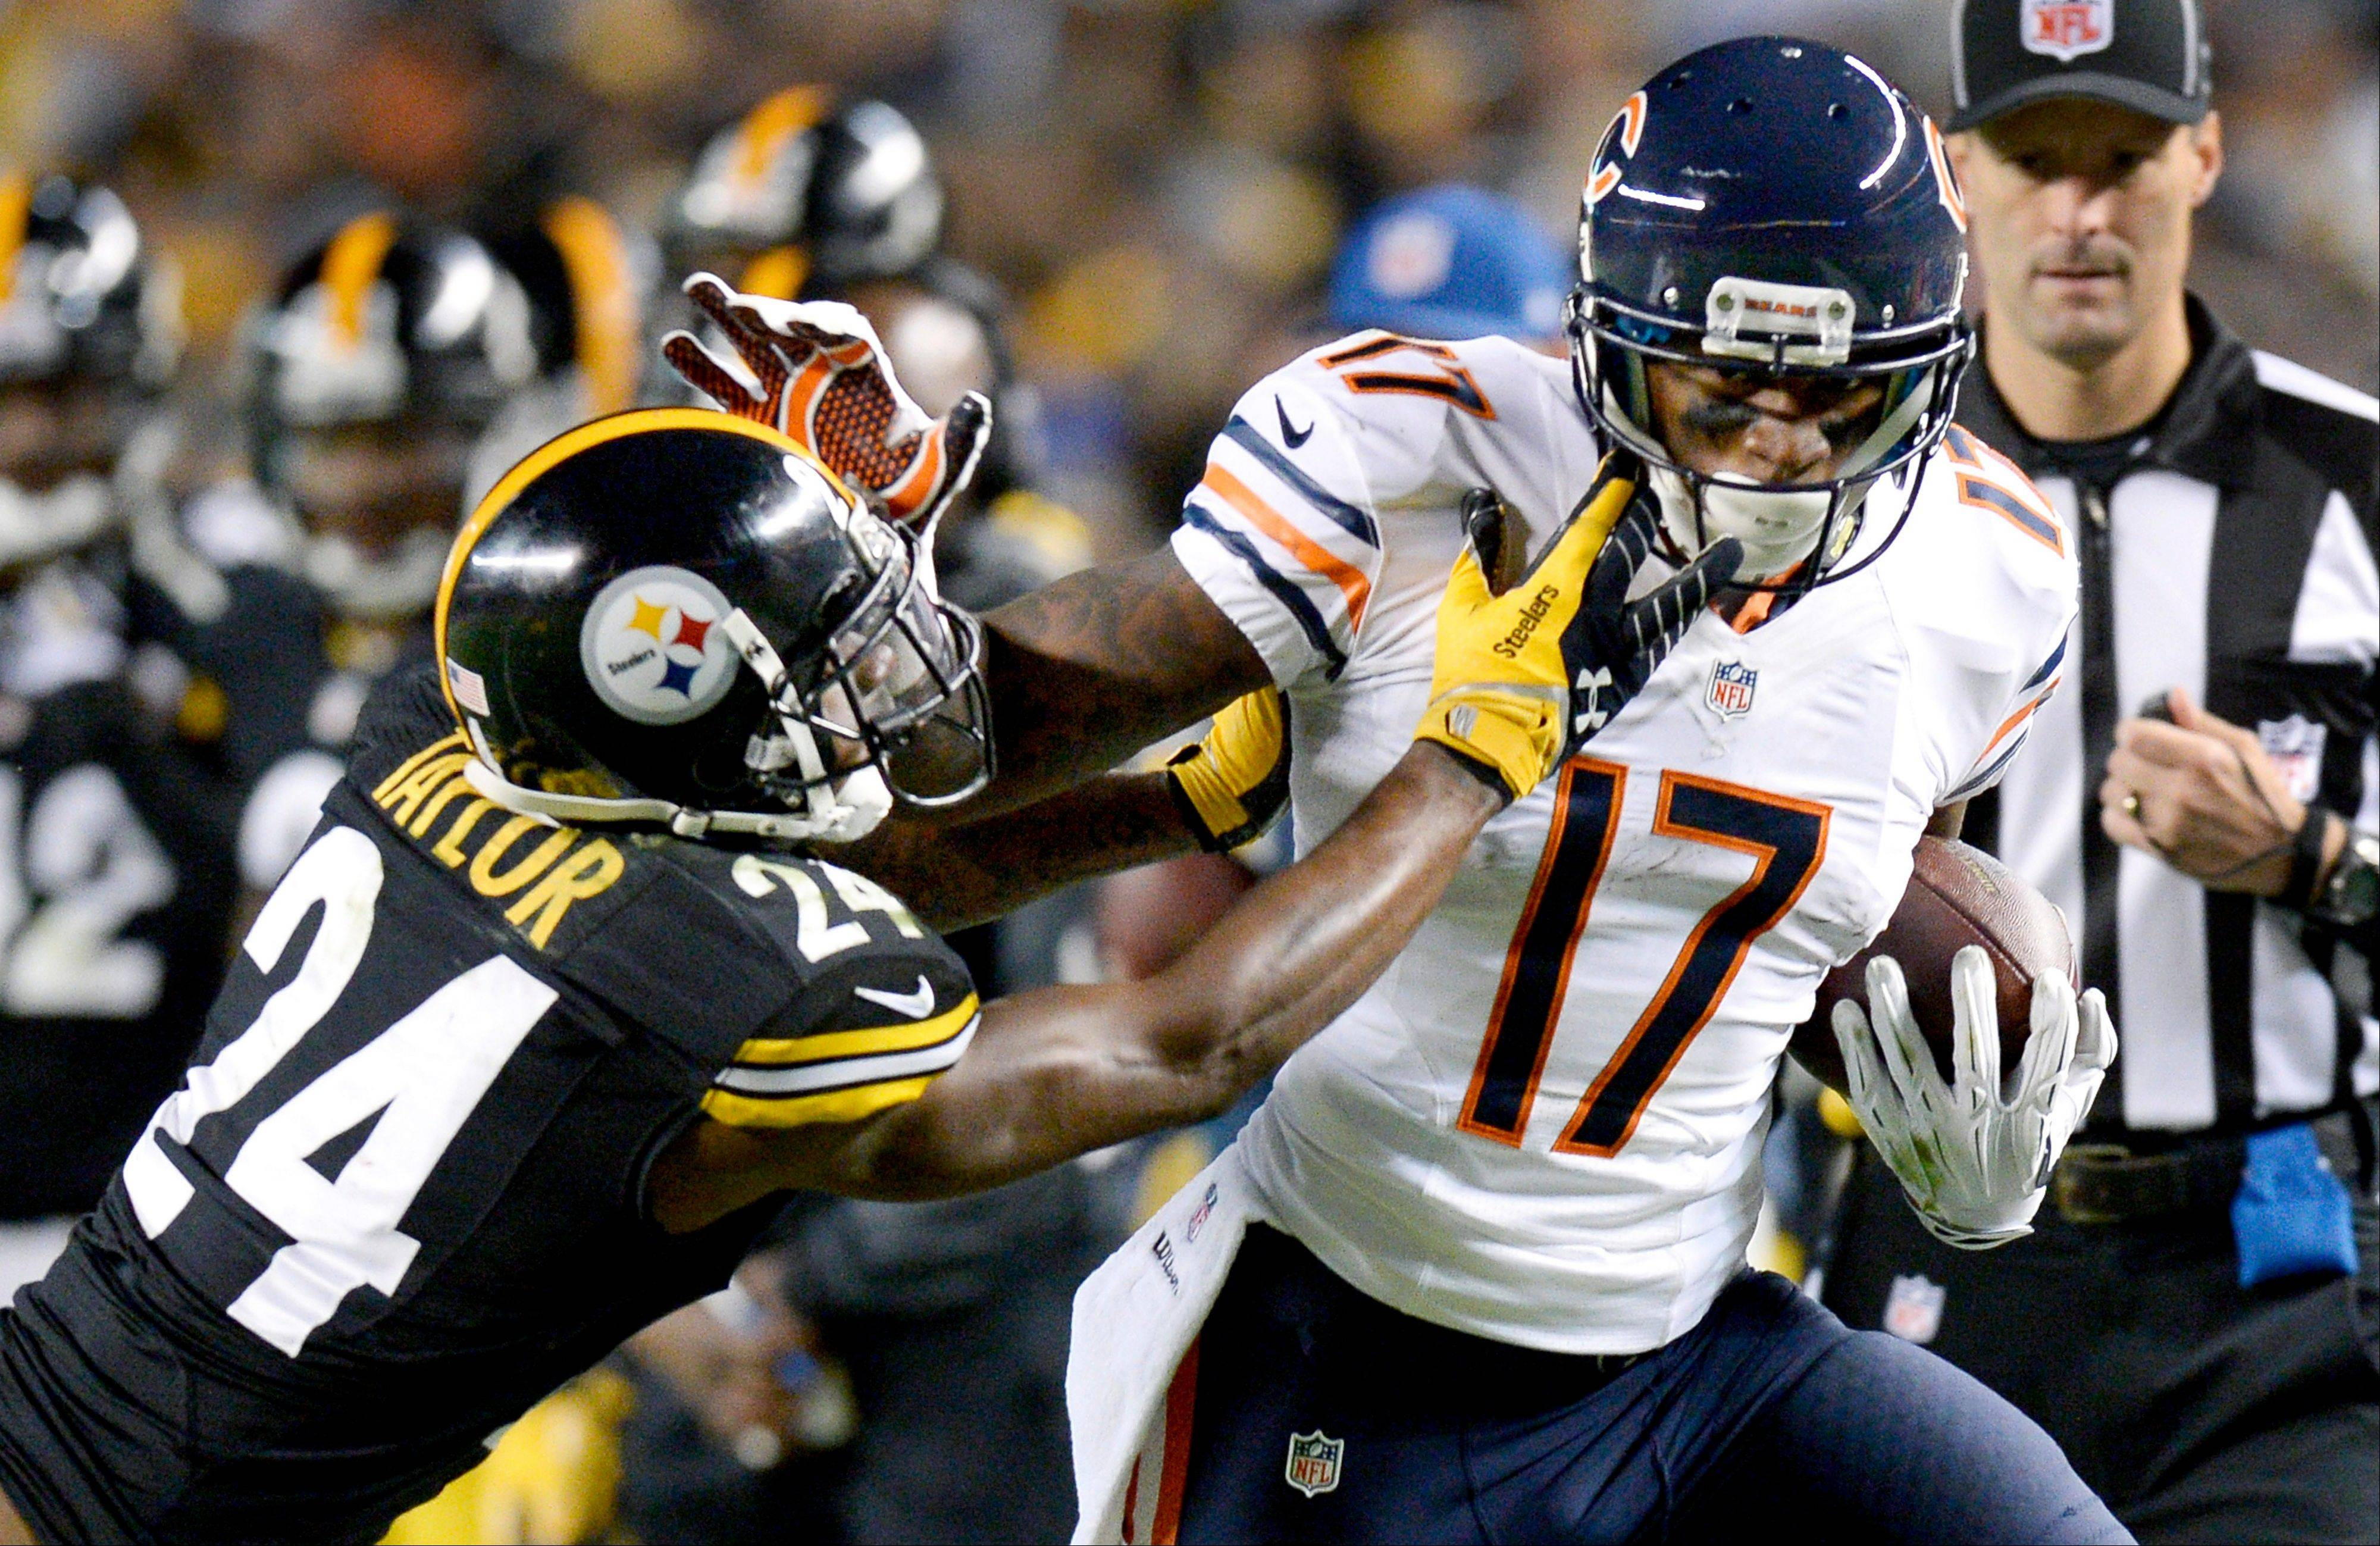 Bears wide receiver Alshon Jeffery (17) is hit by Pittsburgh Steelers cornerback Ike Taylor (24) after making a catch in the third quarter of an NFL football game Sunday in Pittsburgh. The National Football League is teaming up with Twitter Inc. to post video highlights of games on the microblogging site and share the advertising revenue.